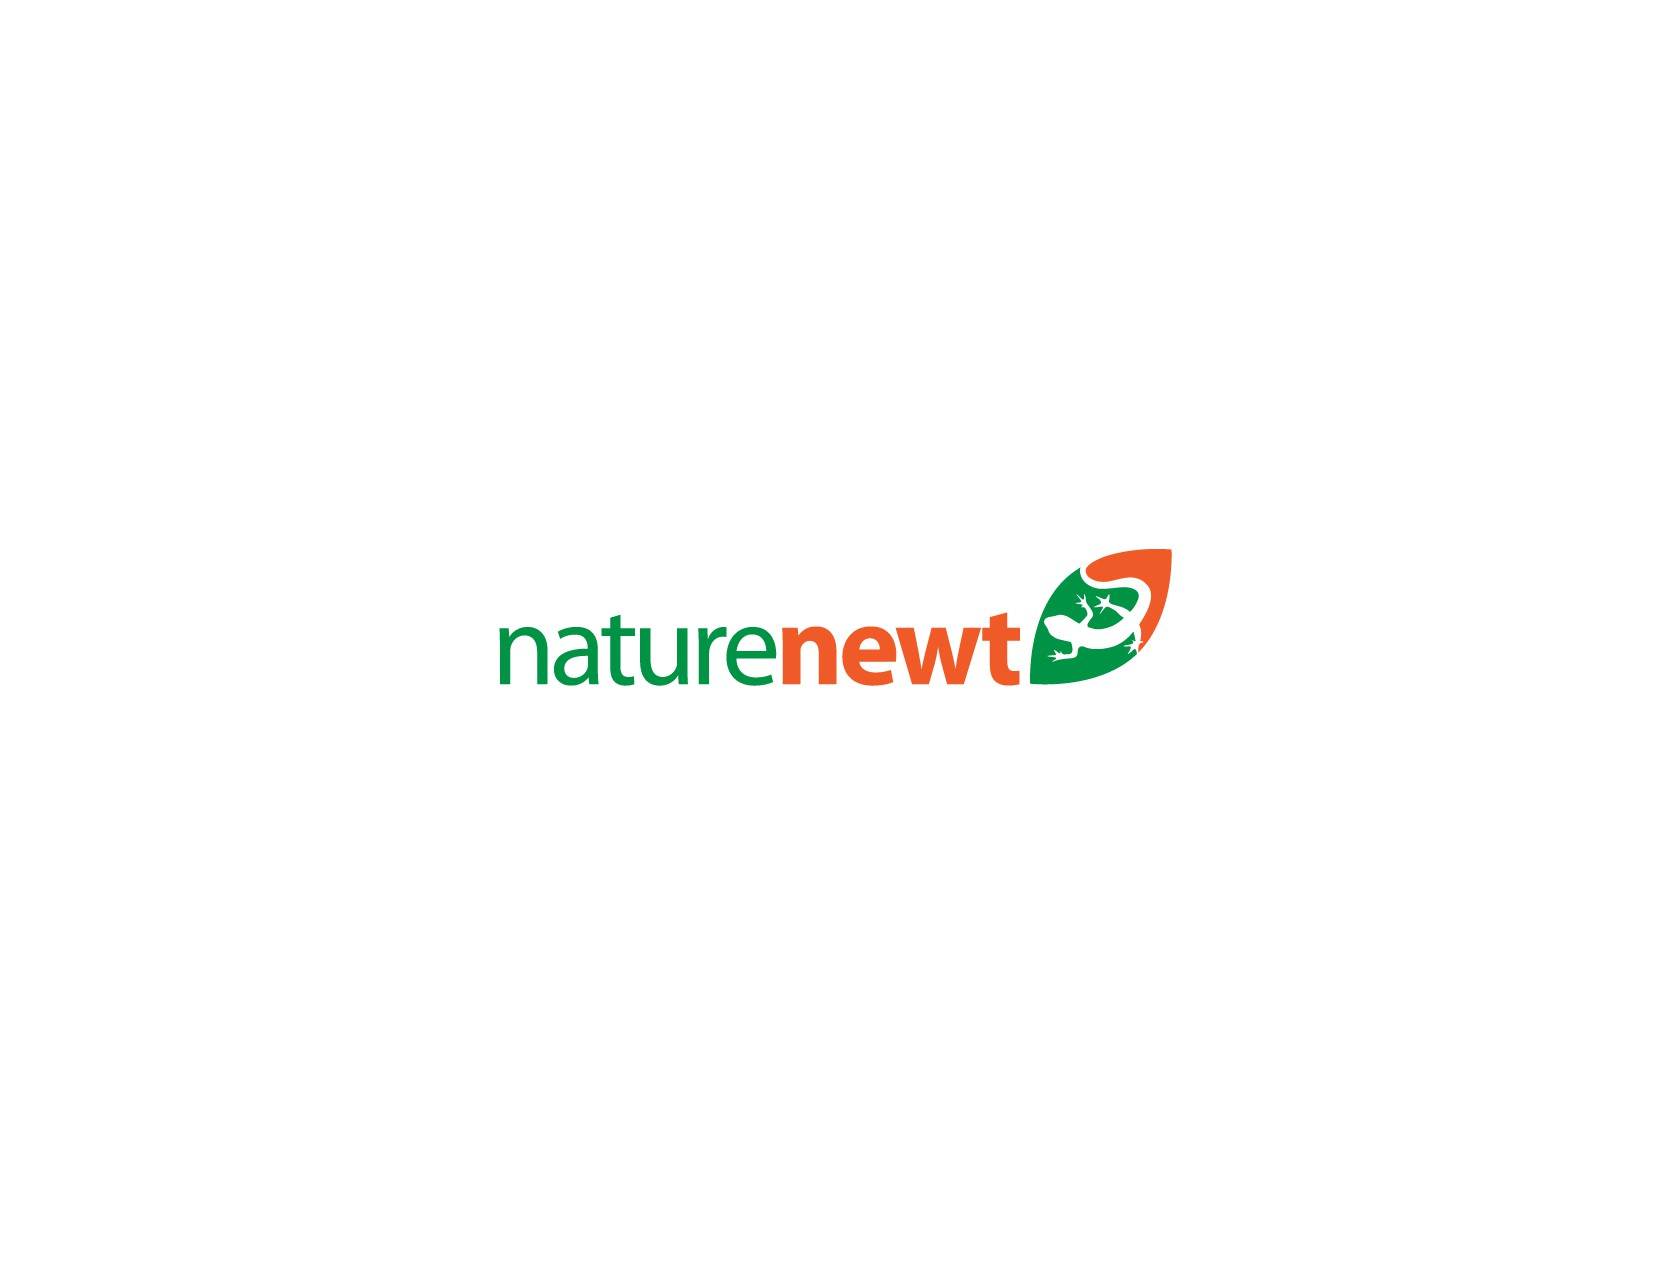 Help Nature Newt with a new logo